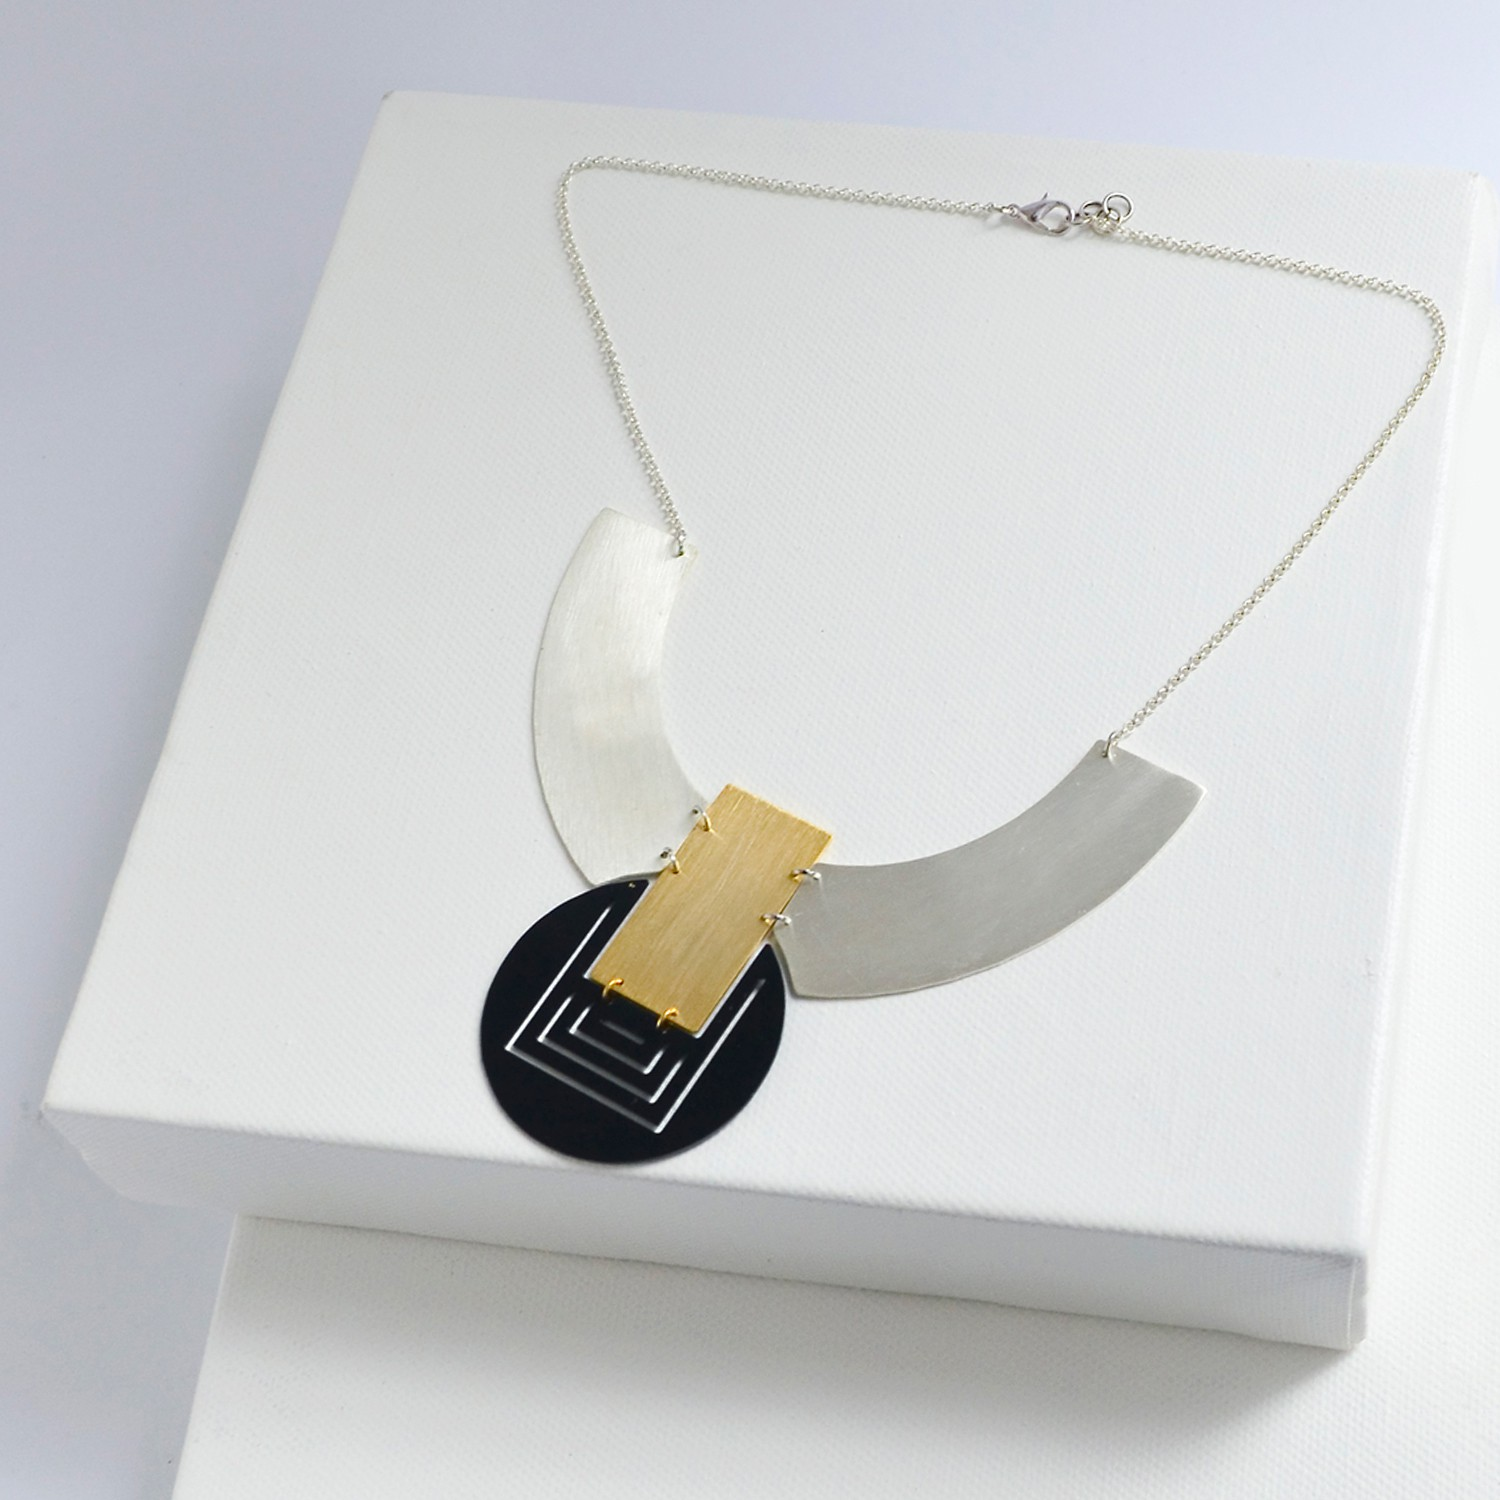 MEET THE CAT Orbit Necklace